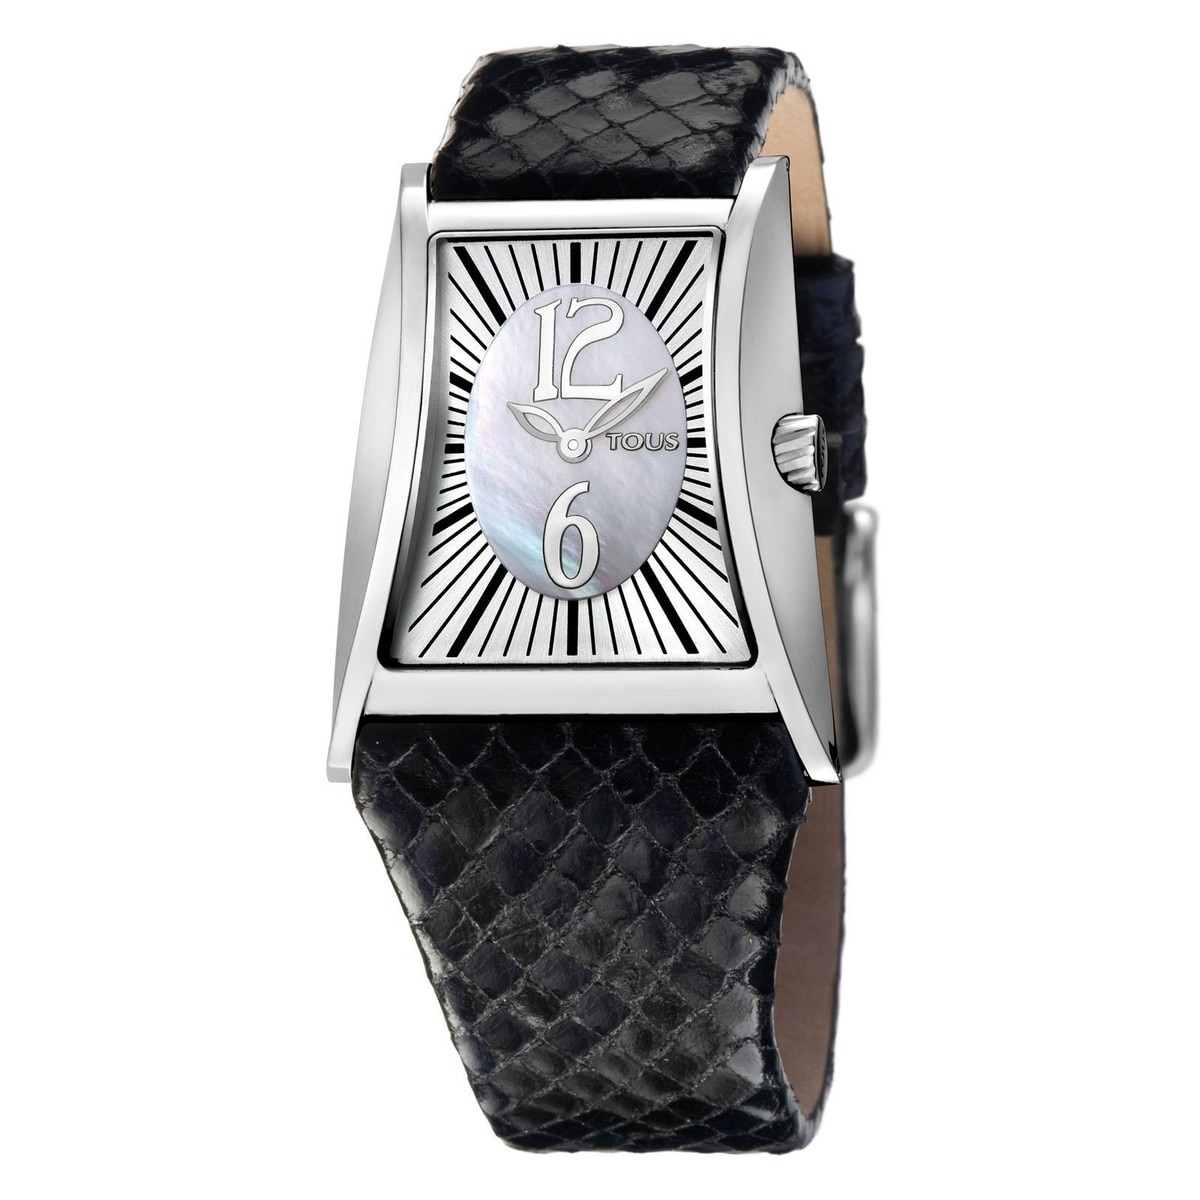 Steel Siena Watch with black Leather strap